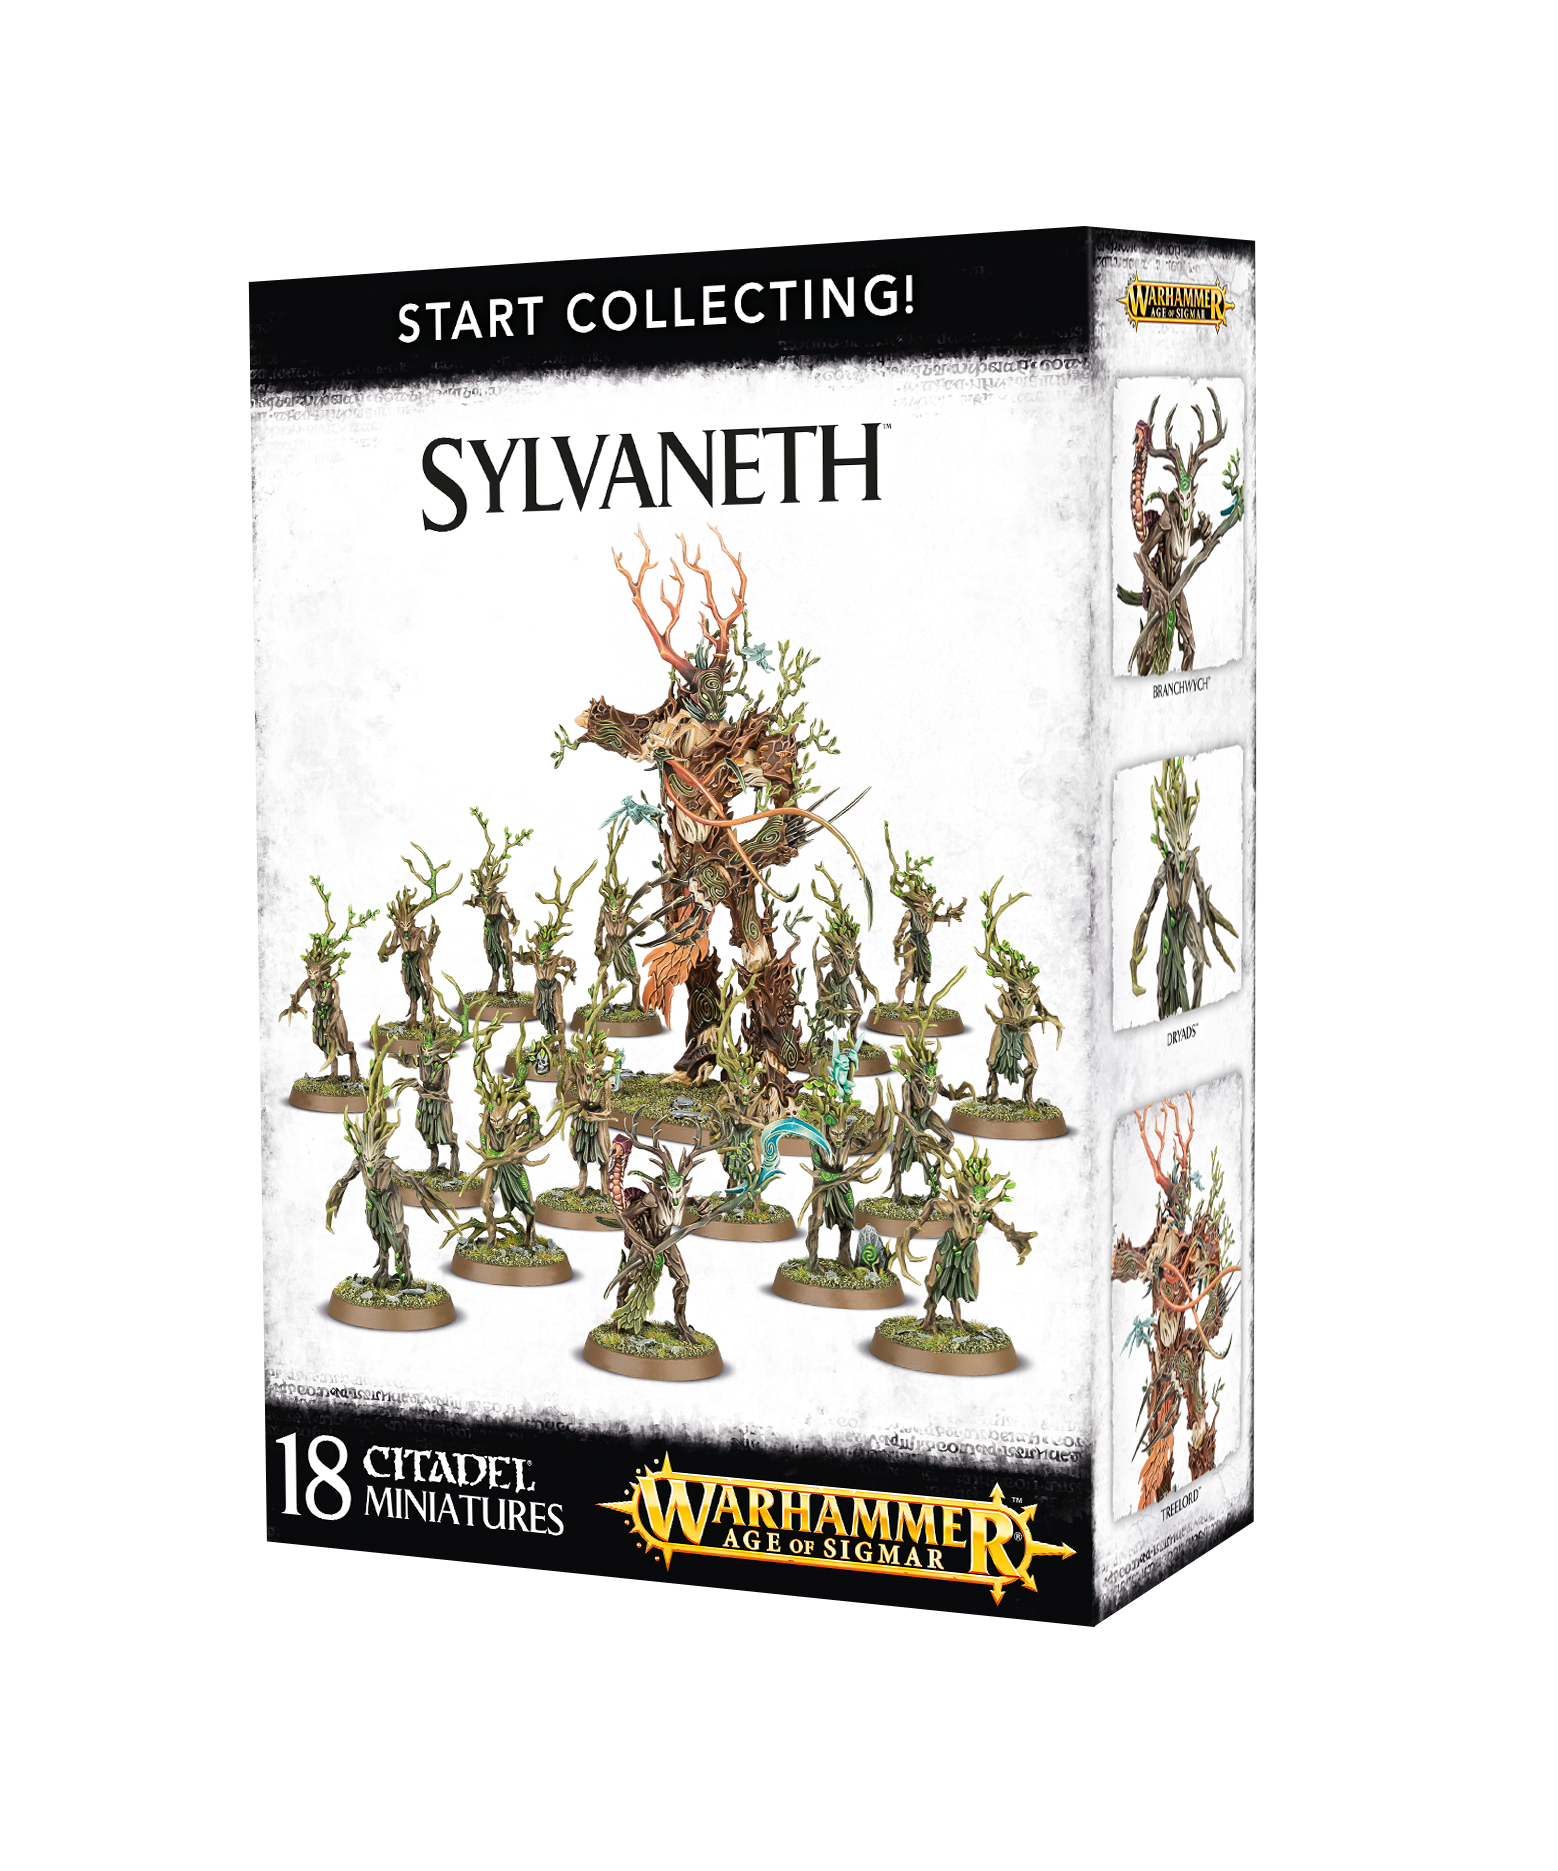 Sylvaneth, Age of Sigmar, Start Collecting